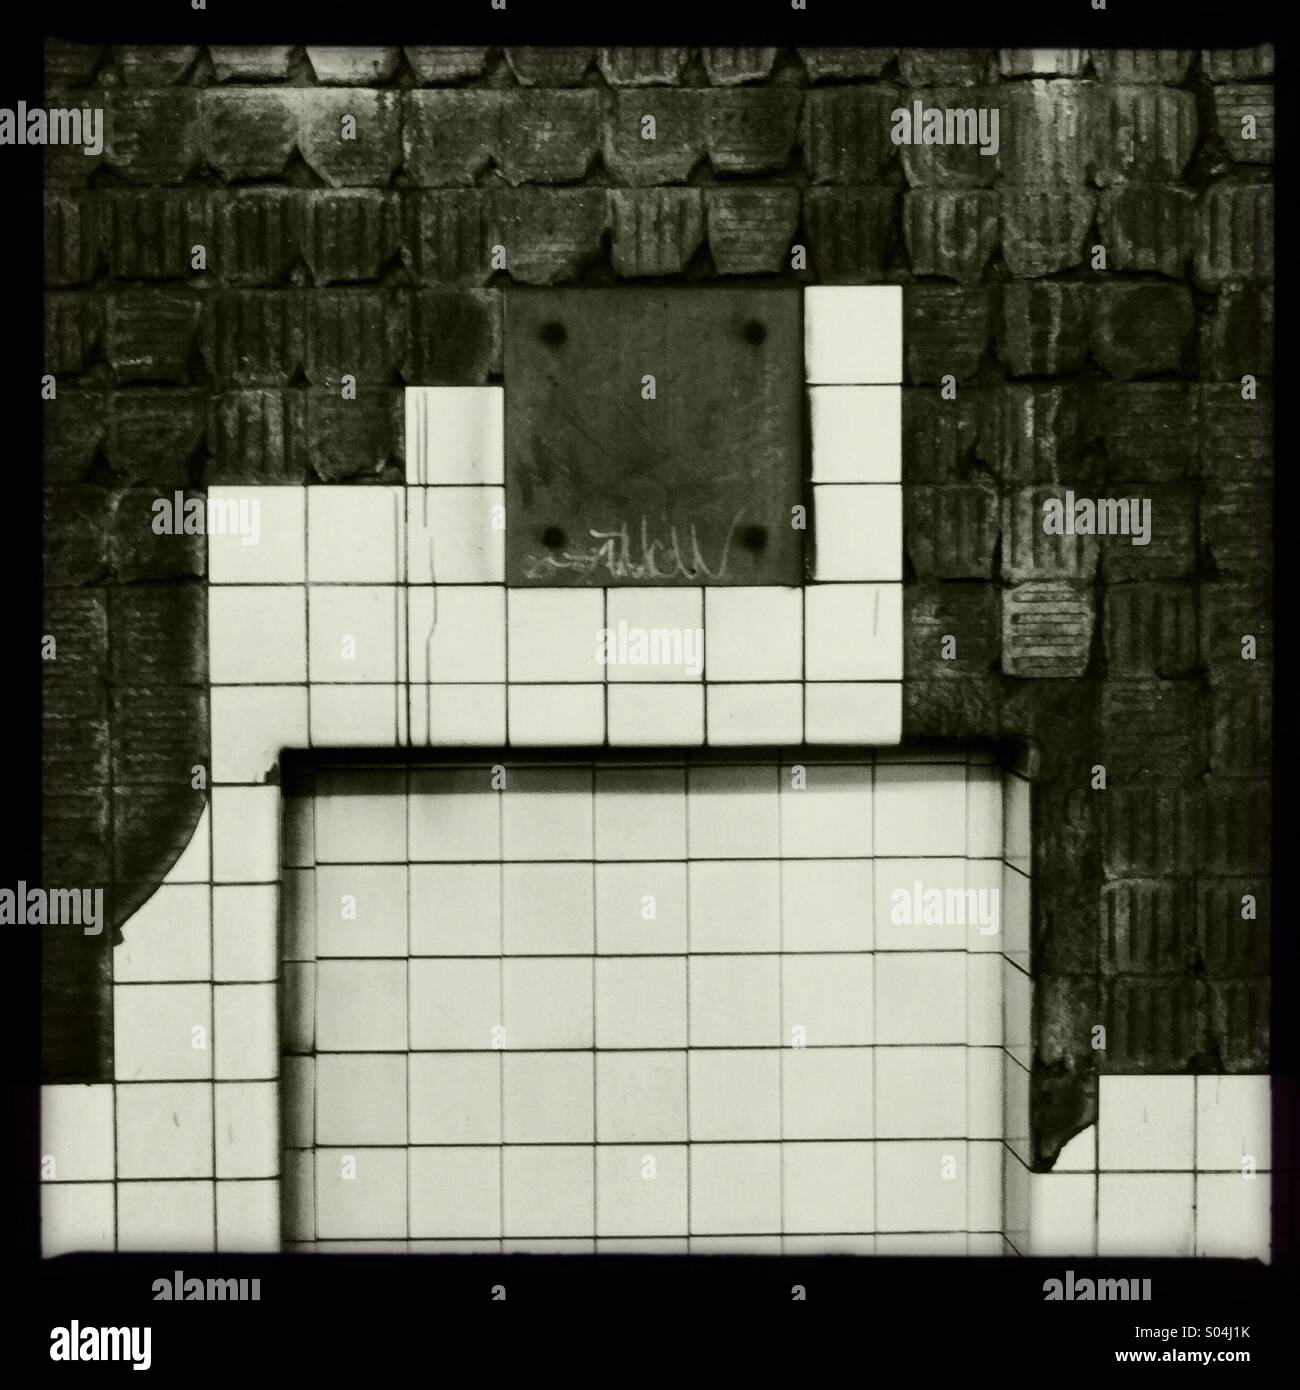 Subway. Wall of the tunnel at the 21st station of the G line in Queens, NY. Tiles are falling off leaving interesting - Stock Image